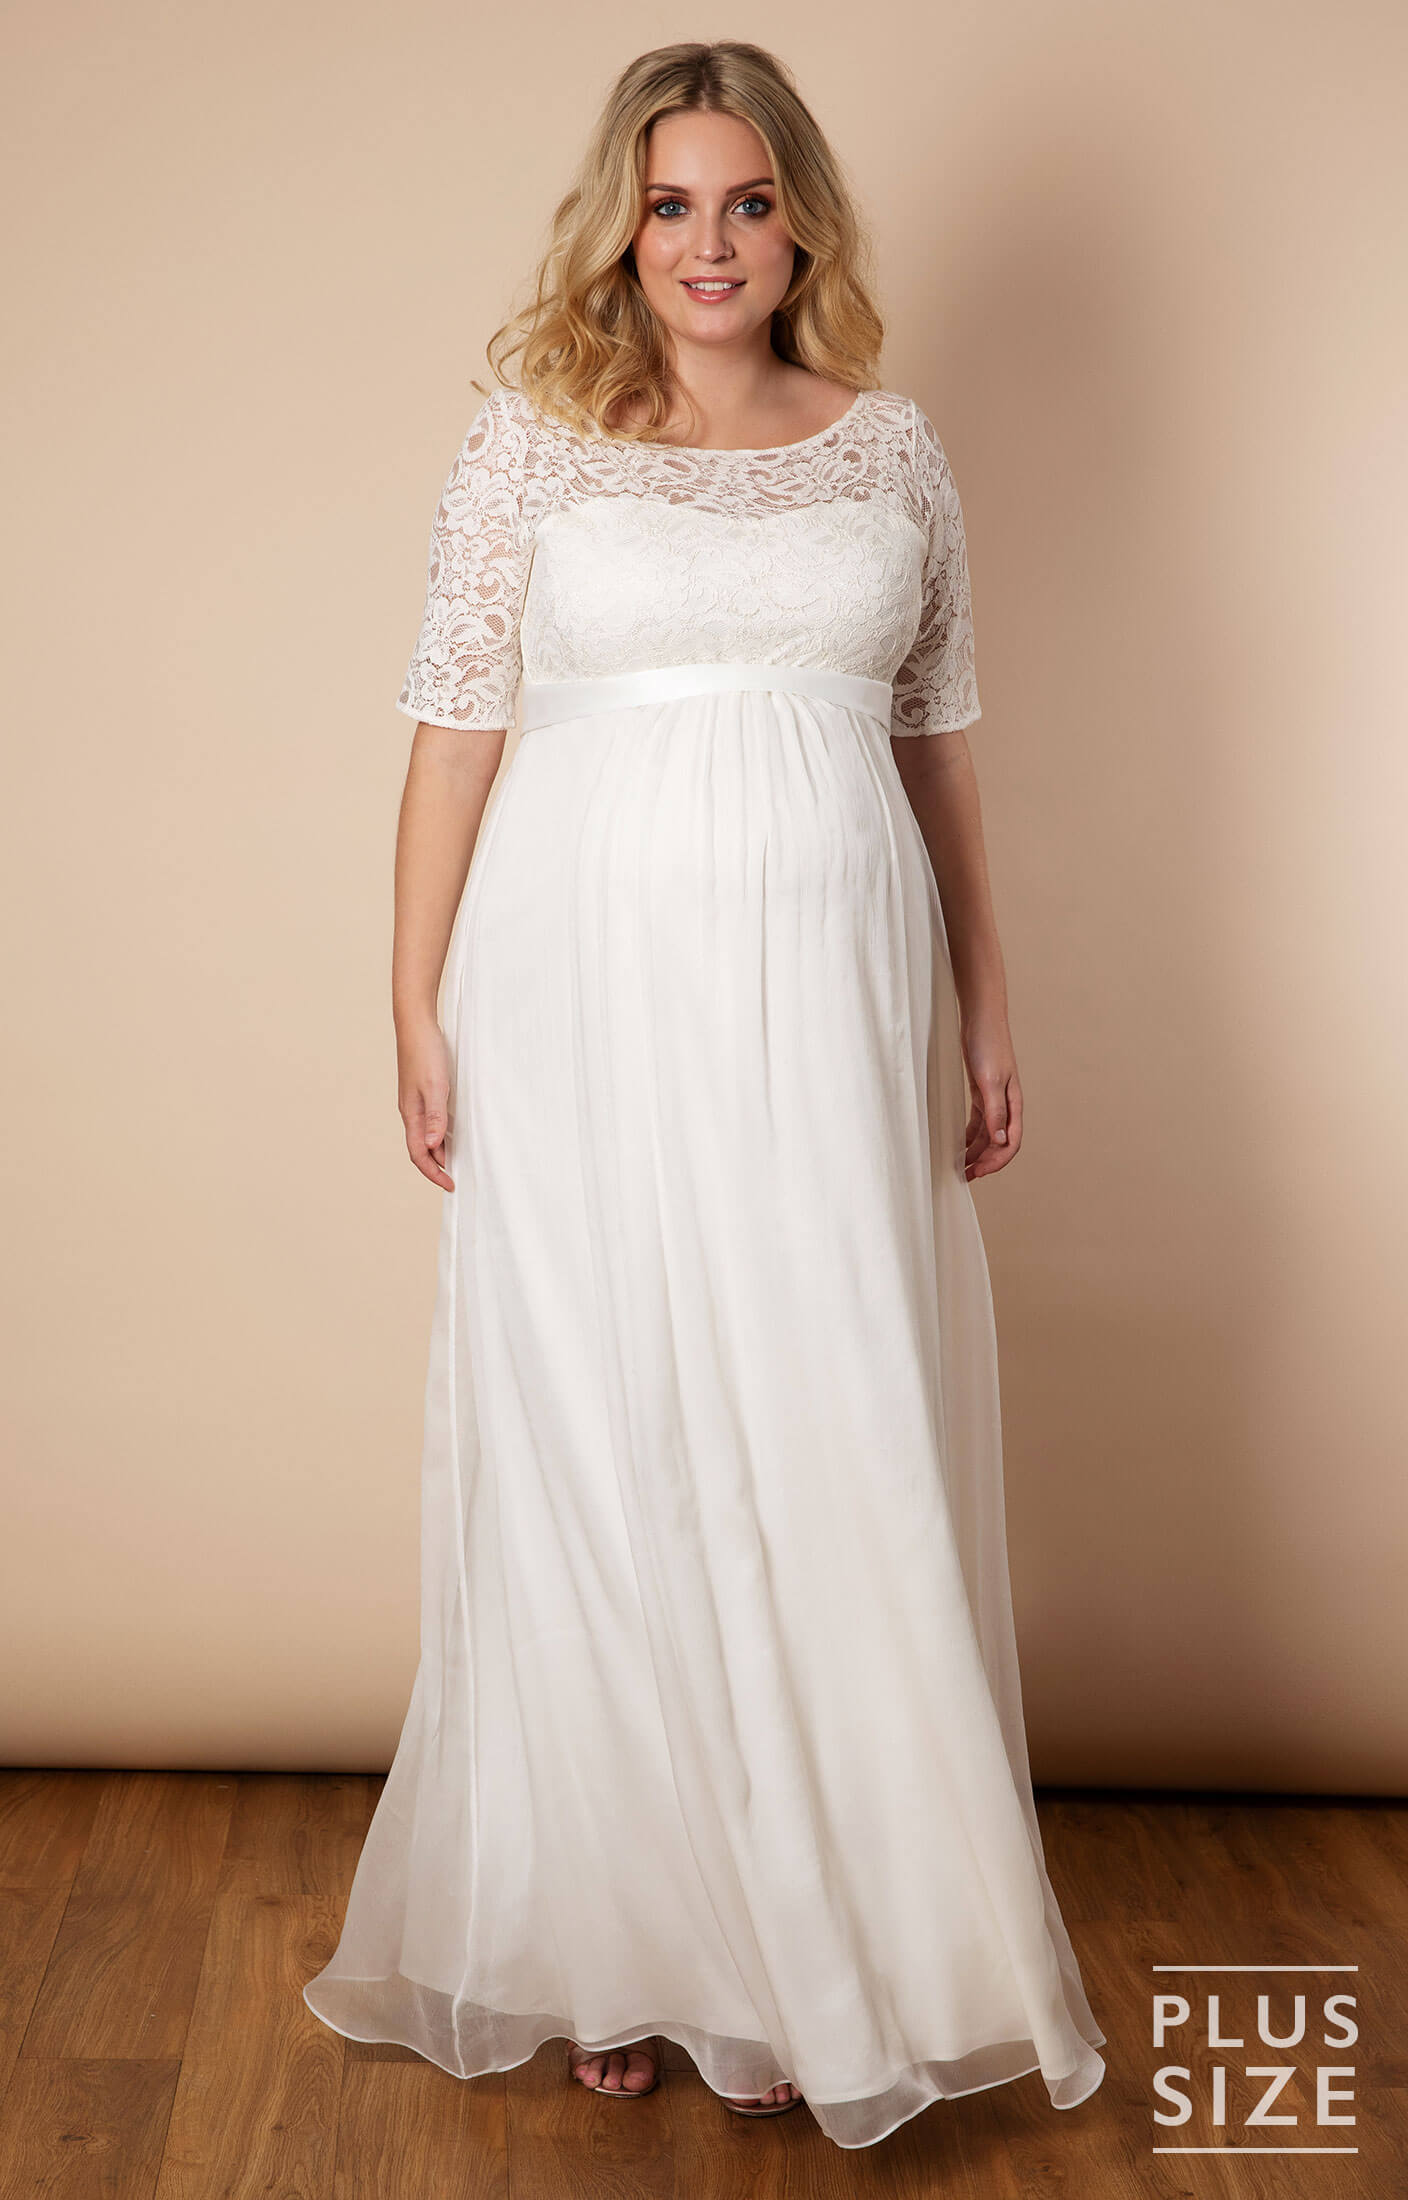 Alaska Plus Size Maternity Silk Chiffon Wedding Gown - Maternity Wedding  Dresses, Evening Wear and Party Clothes by Tiffany Rose